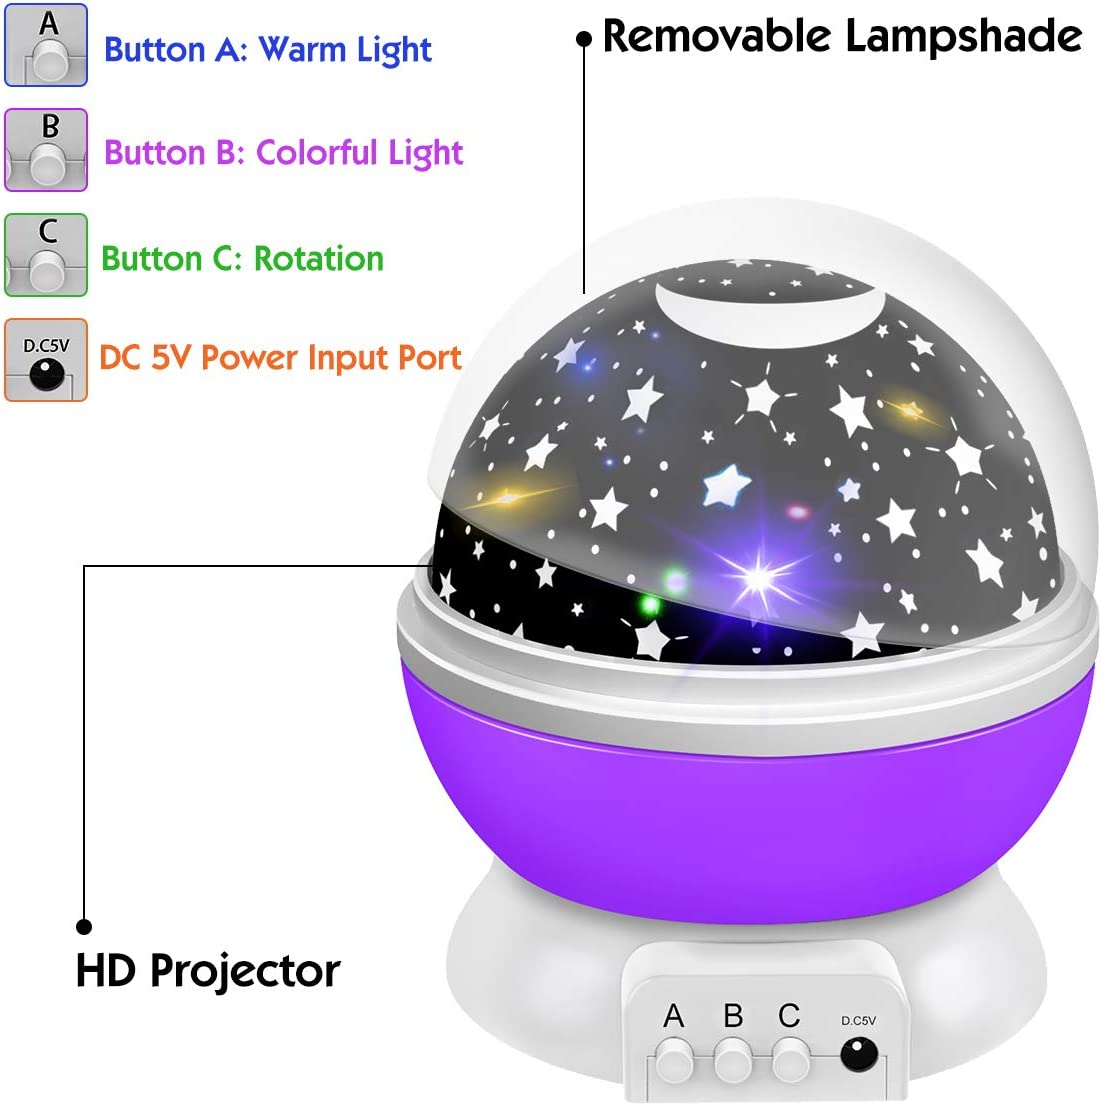 Night Light Projector For Toddlers Kids Babys Boys Girls Bedroom Friday Night Lighting Lamp For Kids 2 6 Year Old Boy Girl Toys Gifts For 2 10 Year Old Boys Girls Toys Age 3 10 Purple Fdcanl02